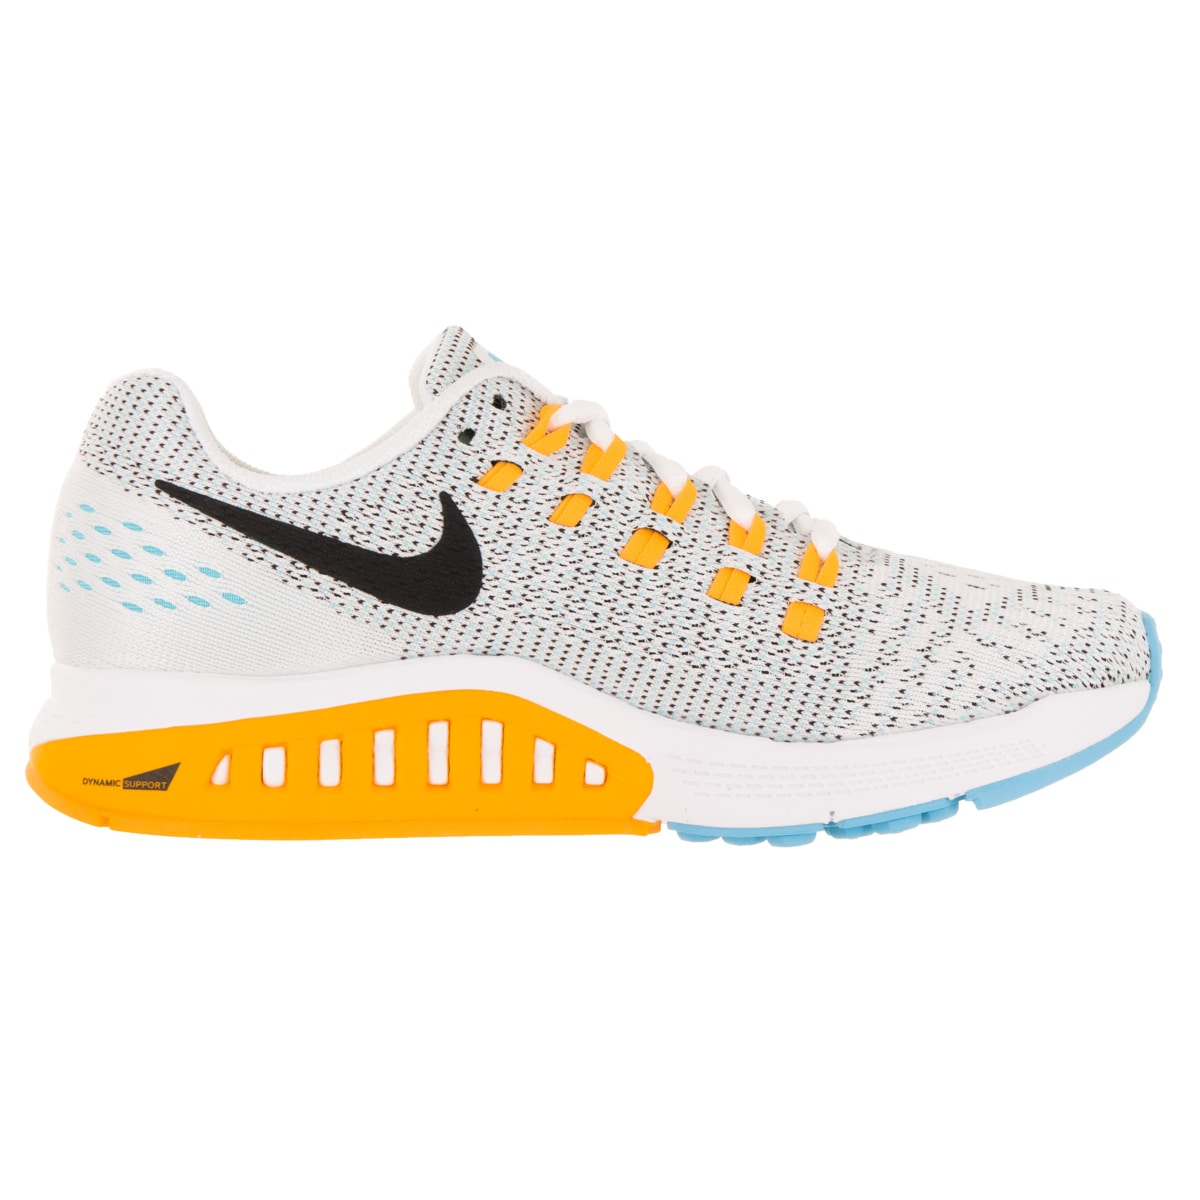 reputable site 6391c 9f445 ... new zealand shop nike womens air zoom structure 19 white black lsr  orange gmm bl running